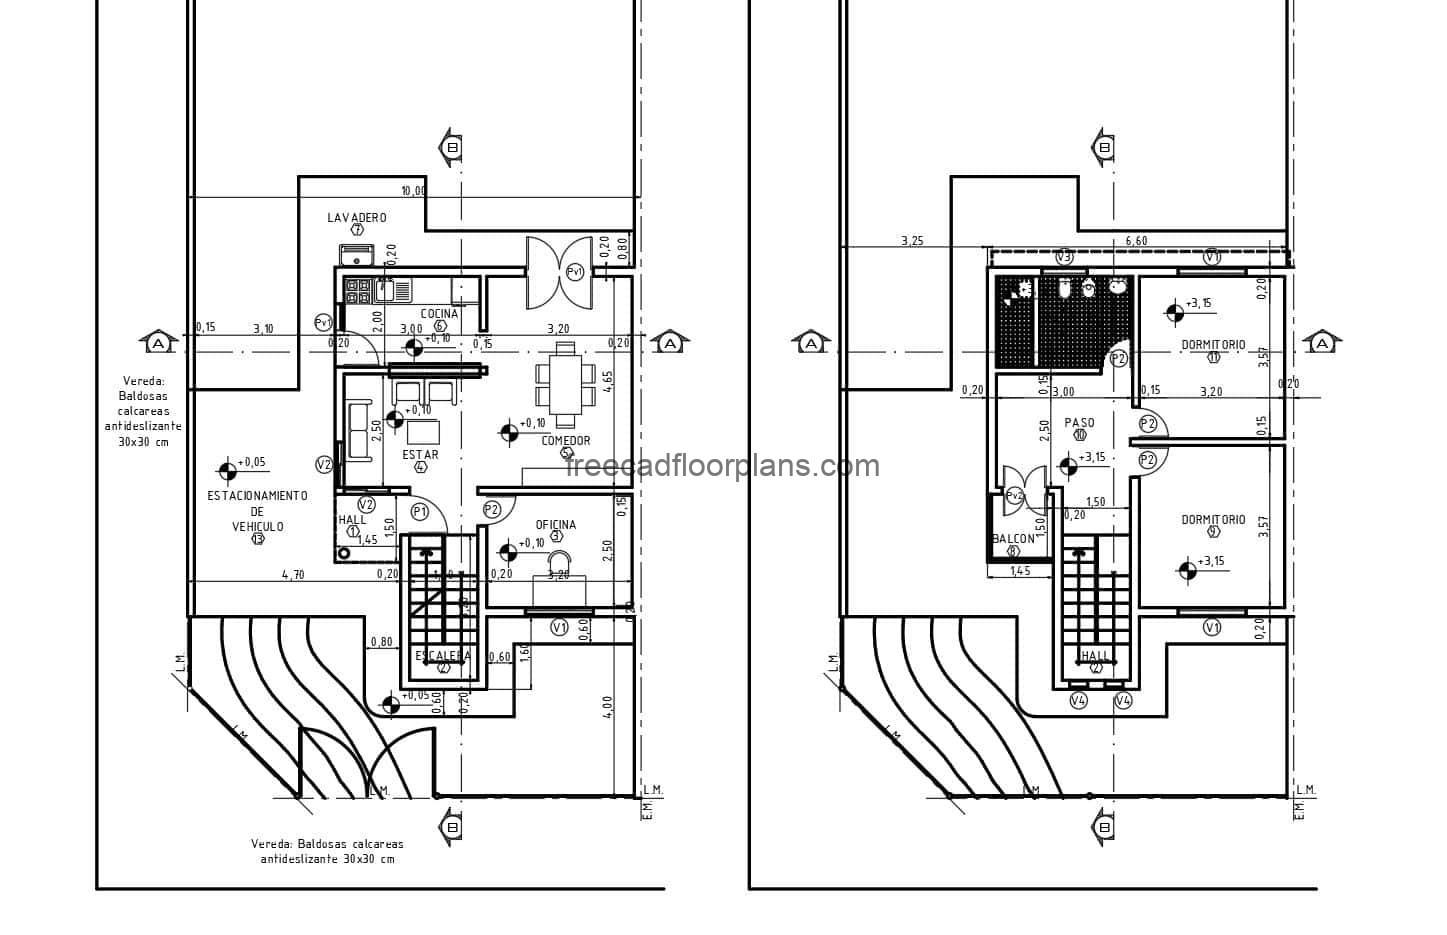 Architectural plans 2D DWG of Autocad and complete project with dimensioned plans of simple residence of two levels with two rooms in concrete. Structure, foundation, sanitary, electrical, elevations, sections and material details plans. CAD drawings for free download DWG.